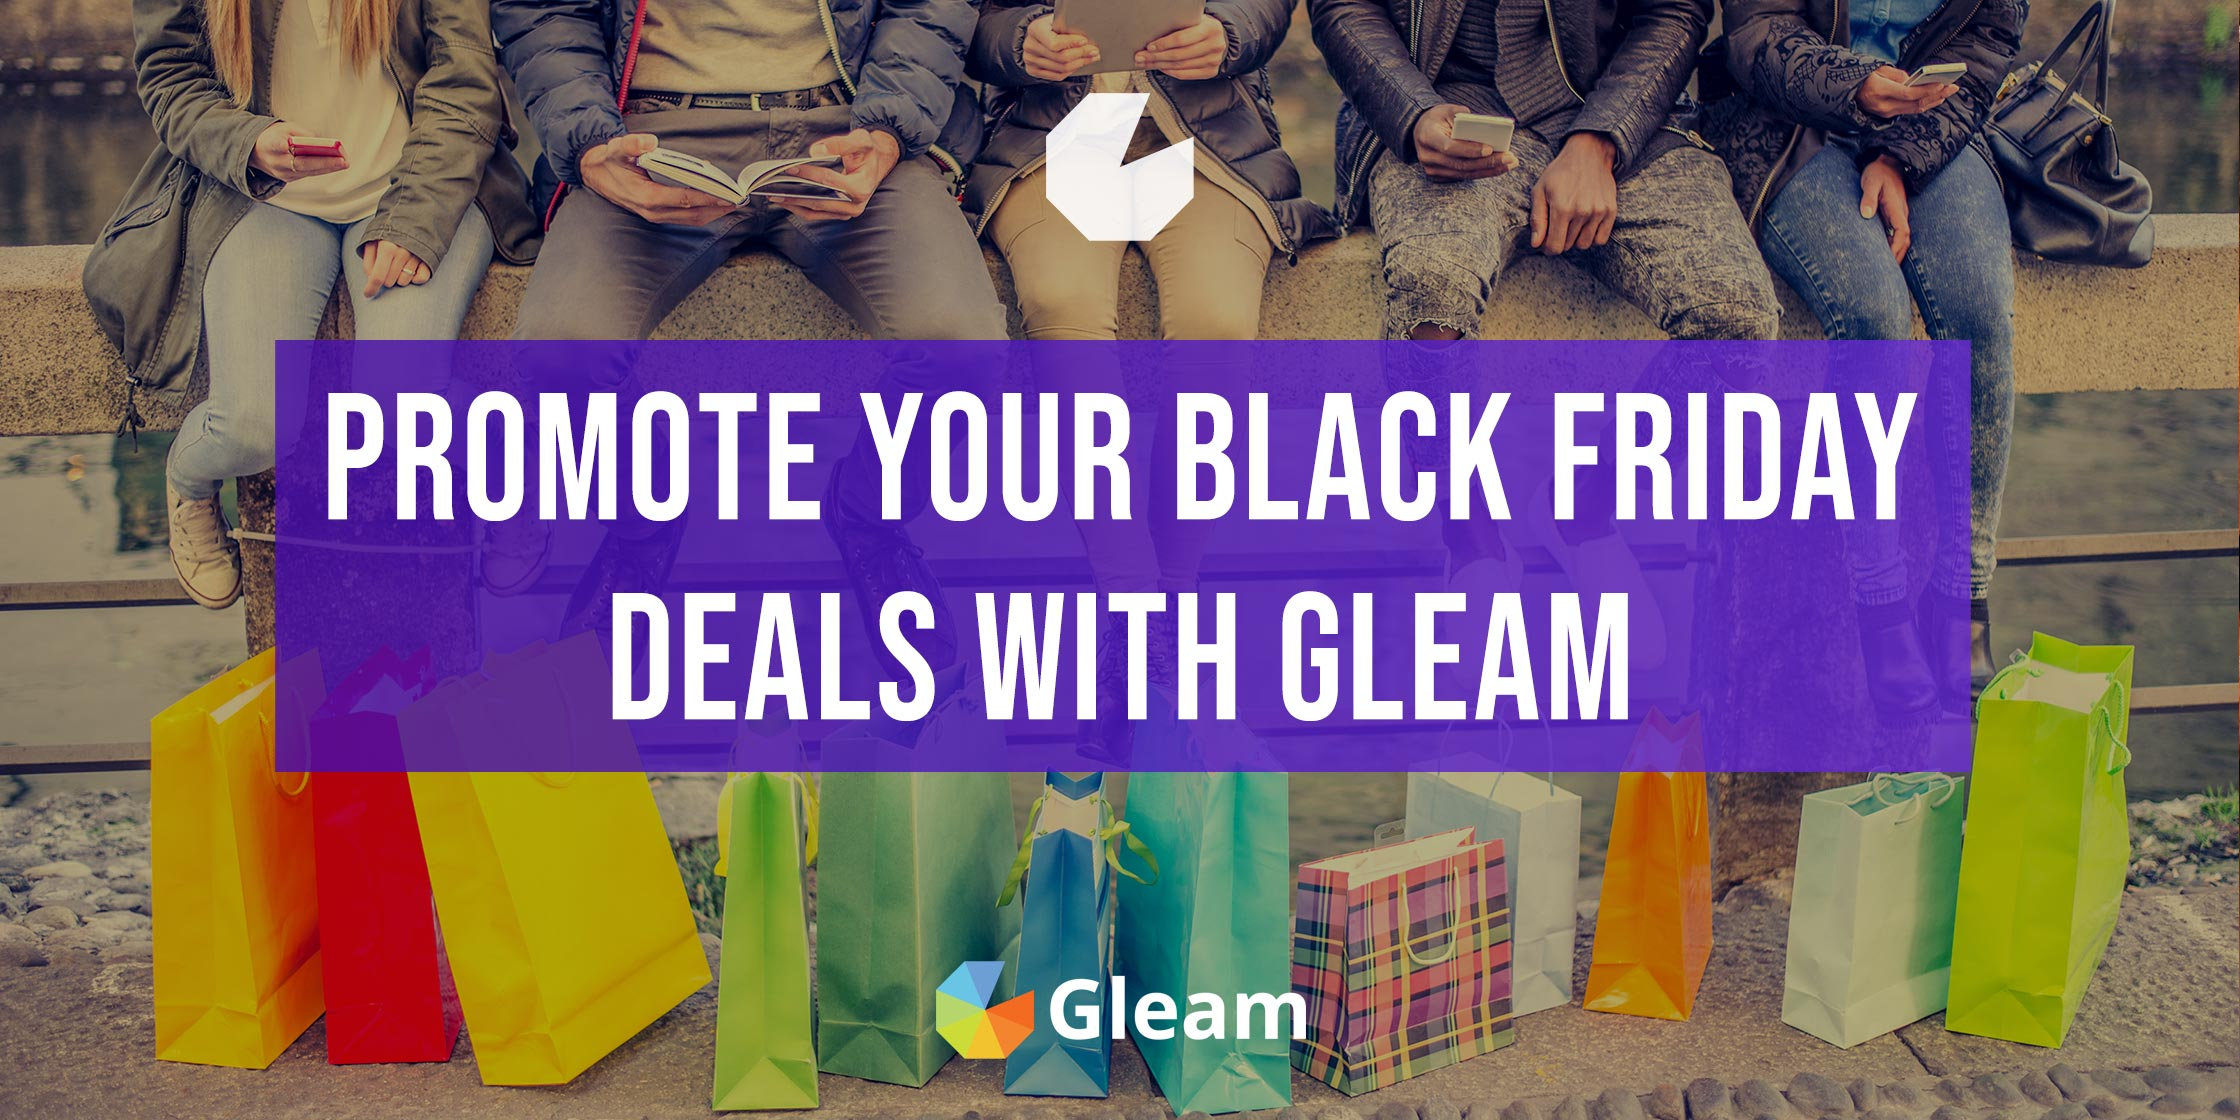 How To Promote Your Black Friday Sales With Gleam